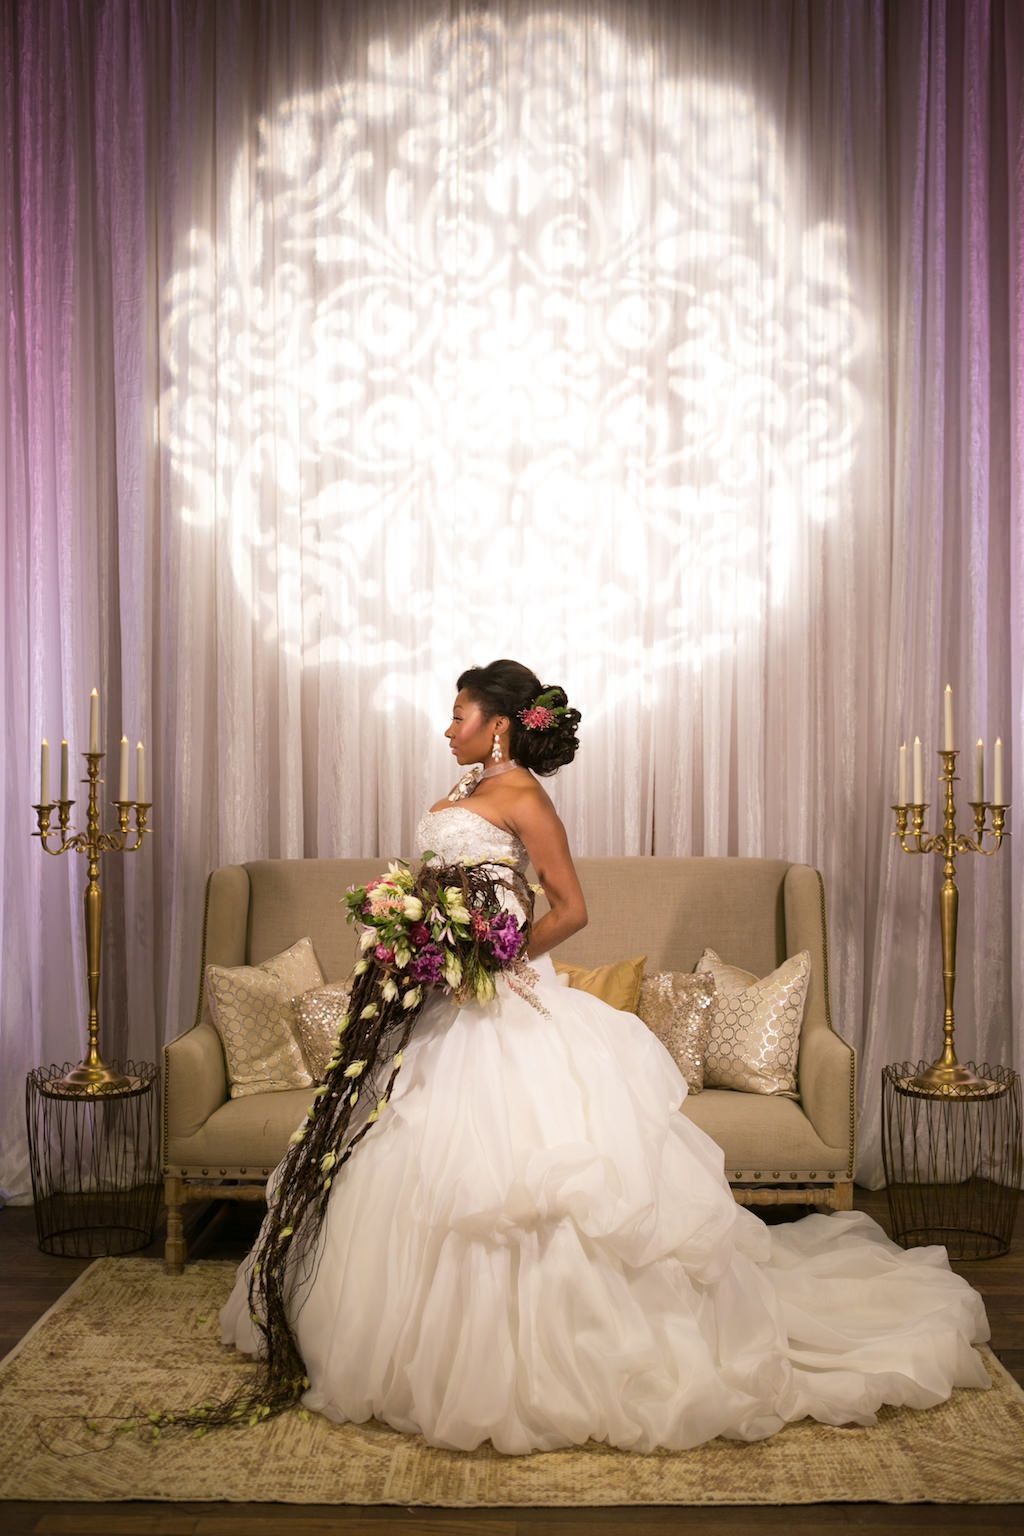 French Inspired Marie Antoinette Bridal Portrait with Cascading Natural Tropical Wedding Bouquet in Ballgown Wedding Dress, Candelabras and High Back Lounge Sofa and Light Projection | Luxurious St Pete Wedding at Unique Downtown Venue NOVA 535